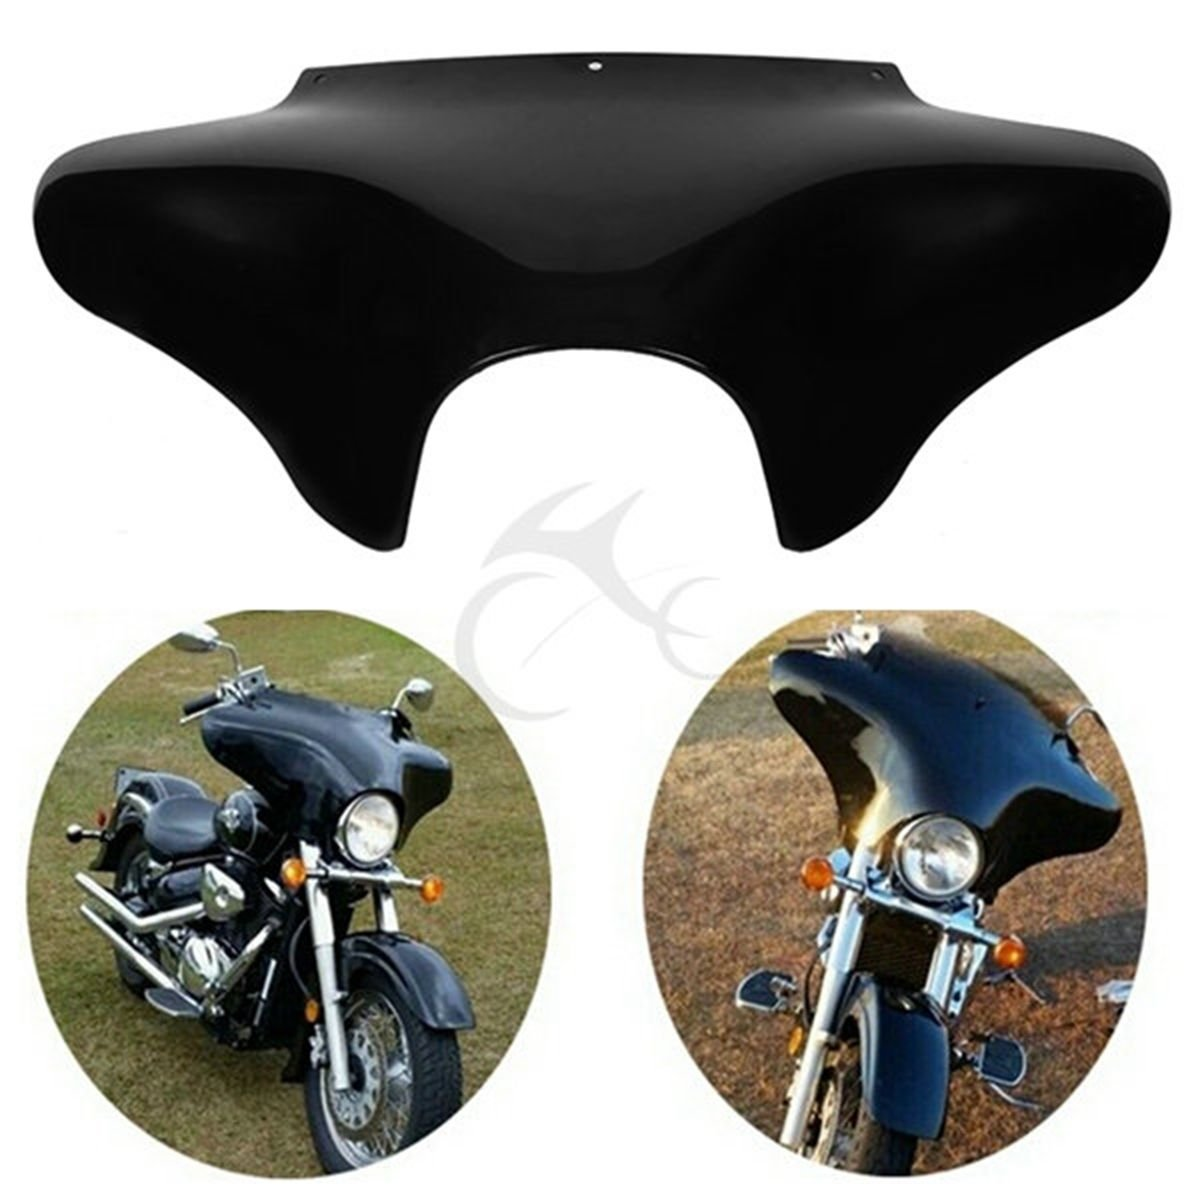 TCMT Vivid Black Front Outer Batwing Fairing For Harley Softail Road King Dyna